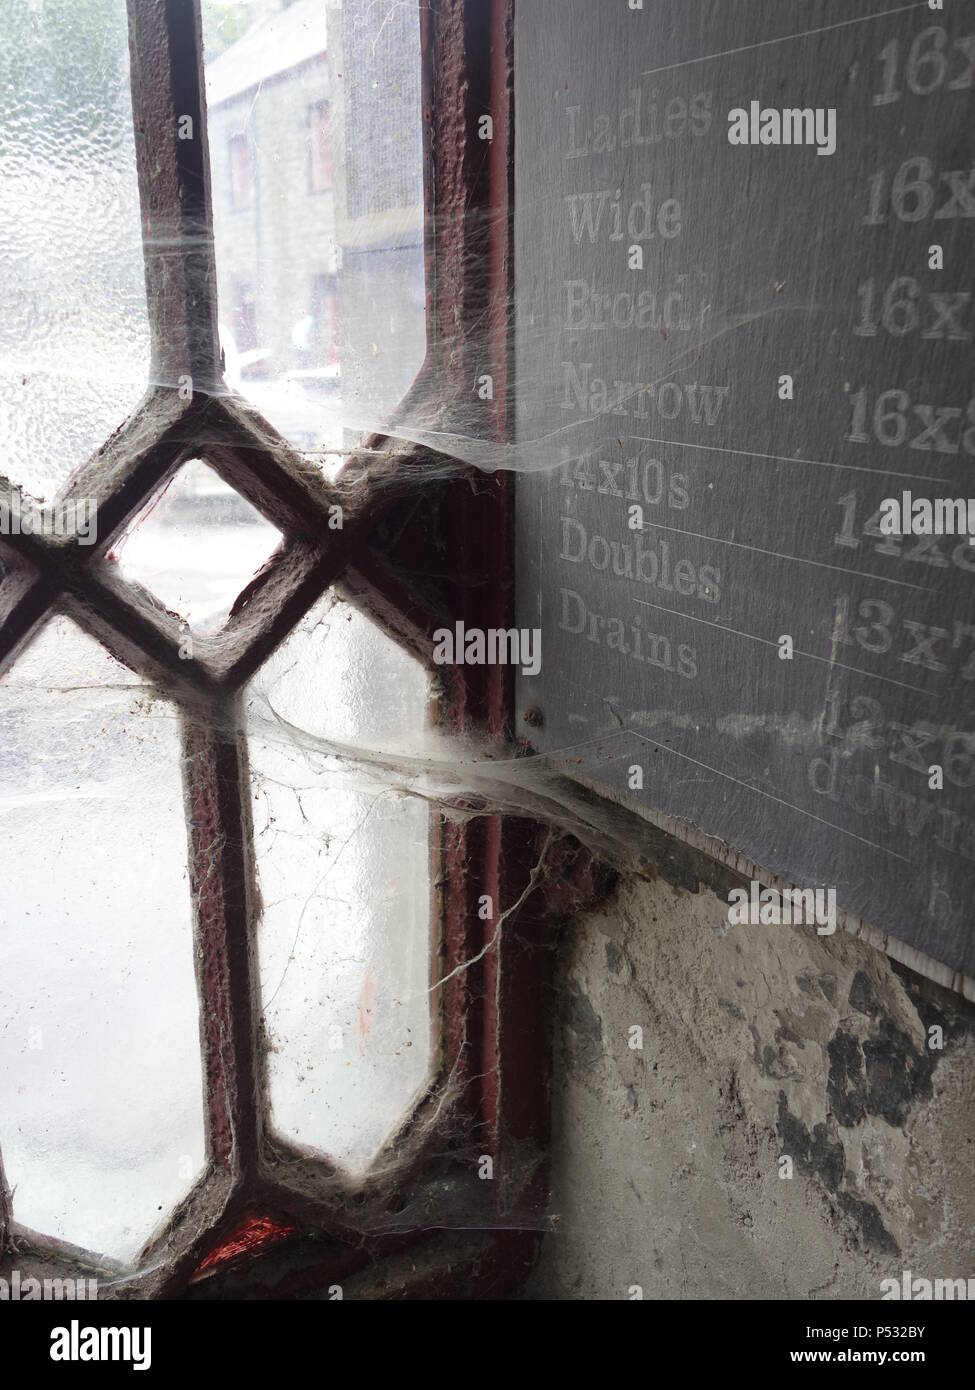 cobwebs in an old window - Stock Image